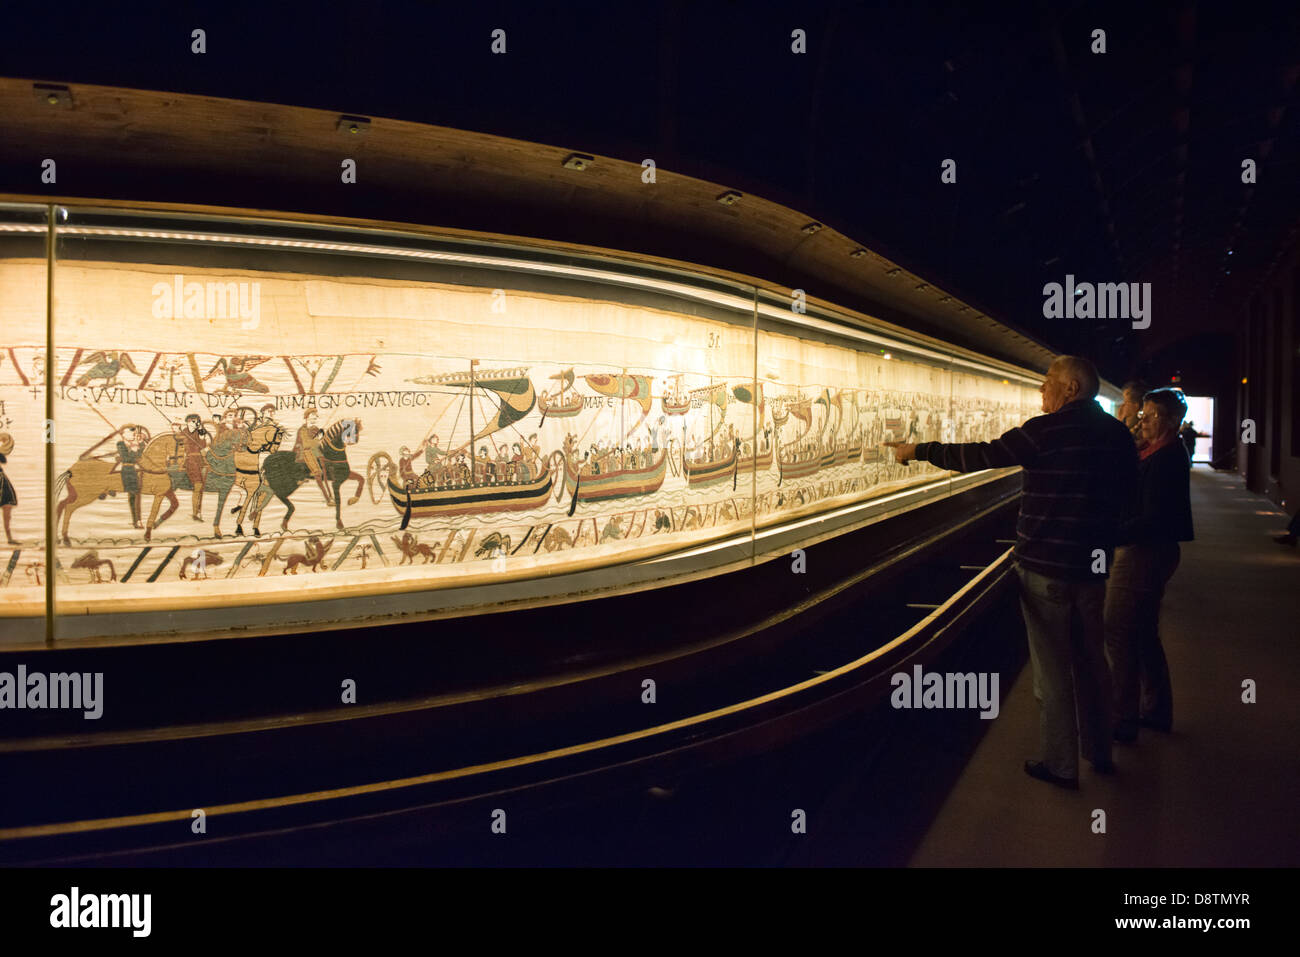 Teppich Von Bayeux Szenen The Bayeux Tapestry French Stockfotos And The Bayeux